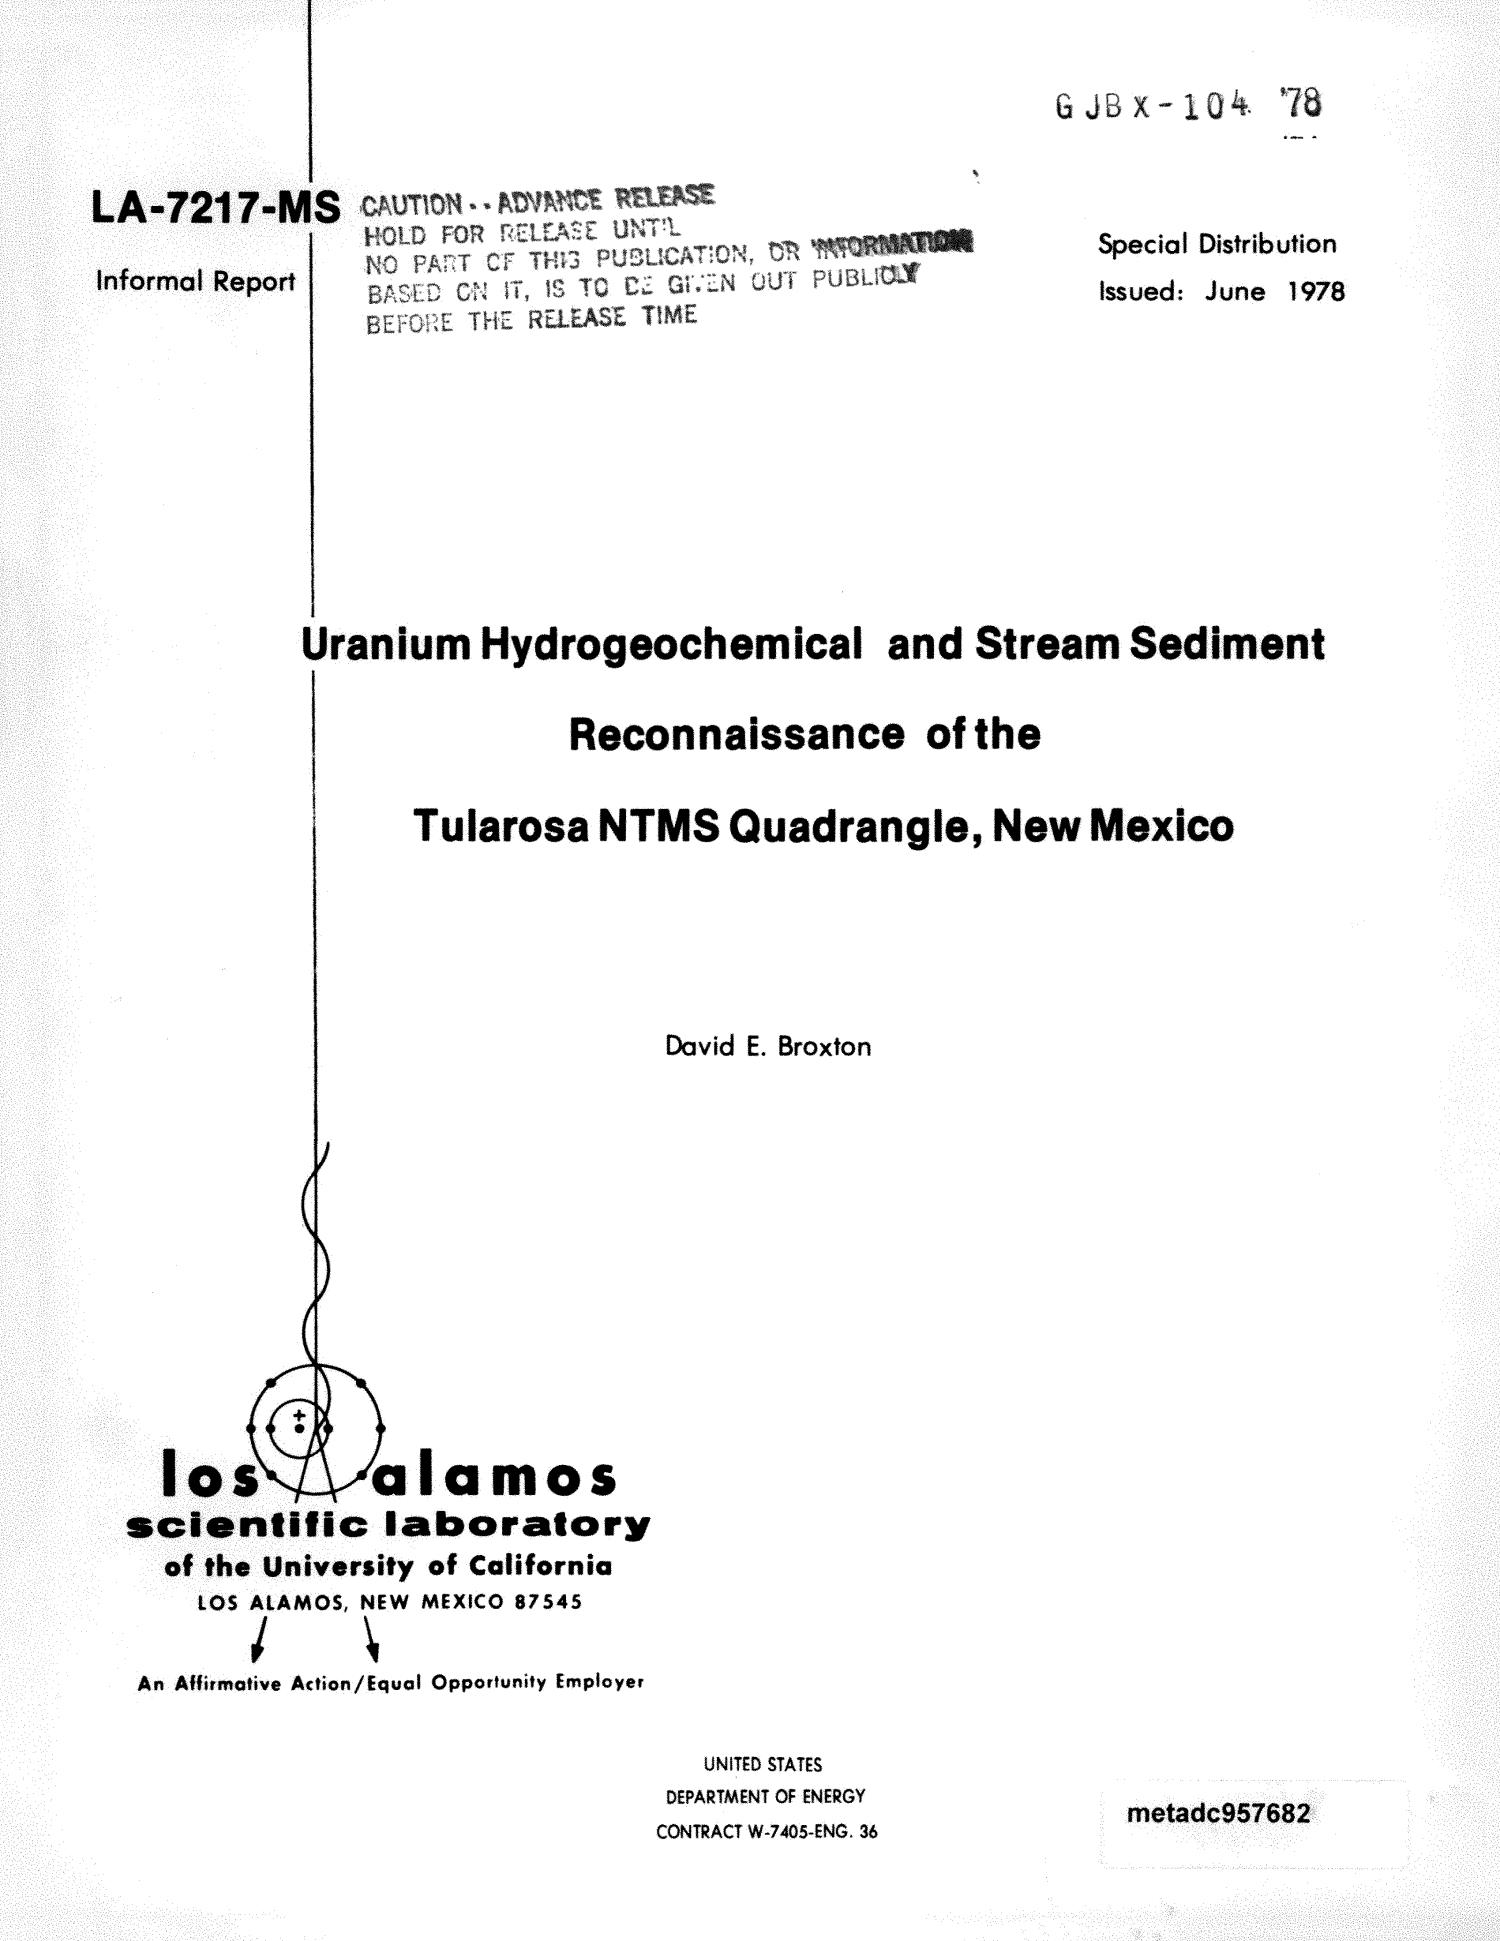 Uranium Hydrogeochemical and Stream Sediment Reconnaissance of the Tularosa NTMS Quadrangle, New Mexico                                                                                                      Front Cover